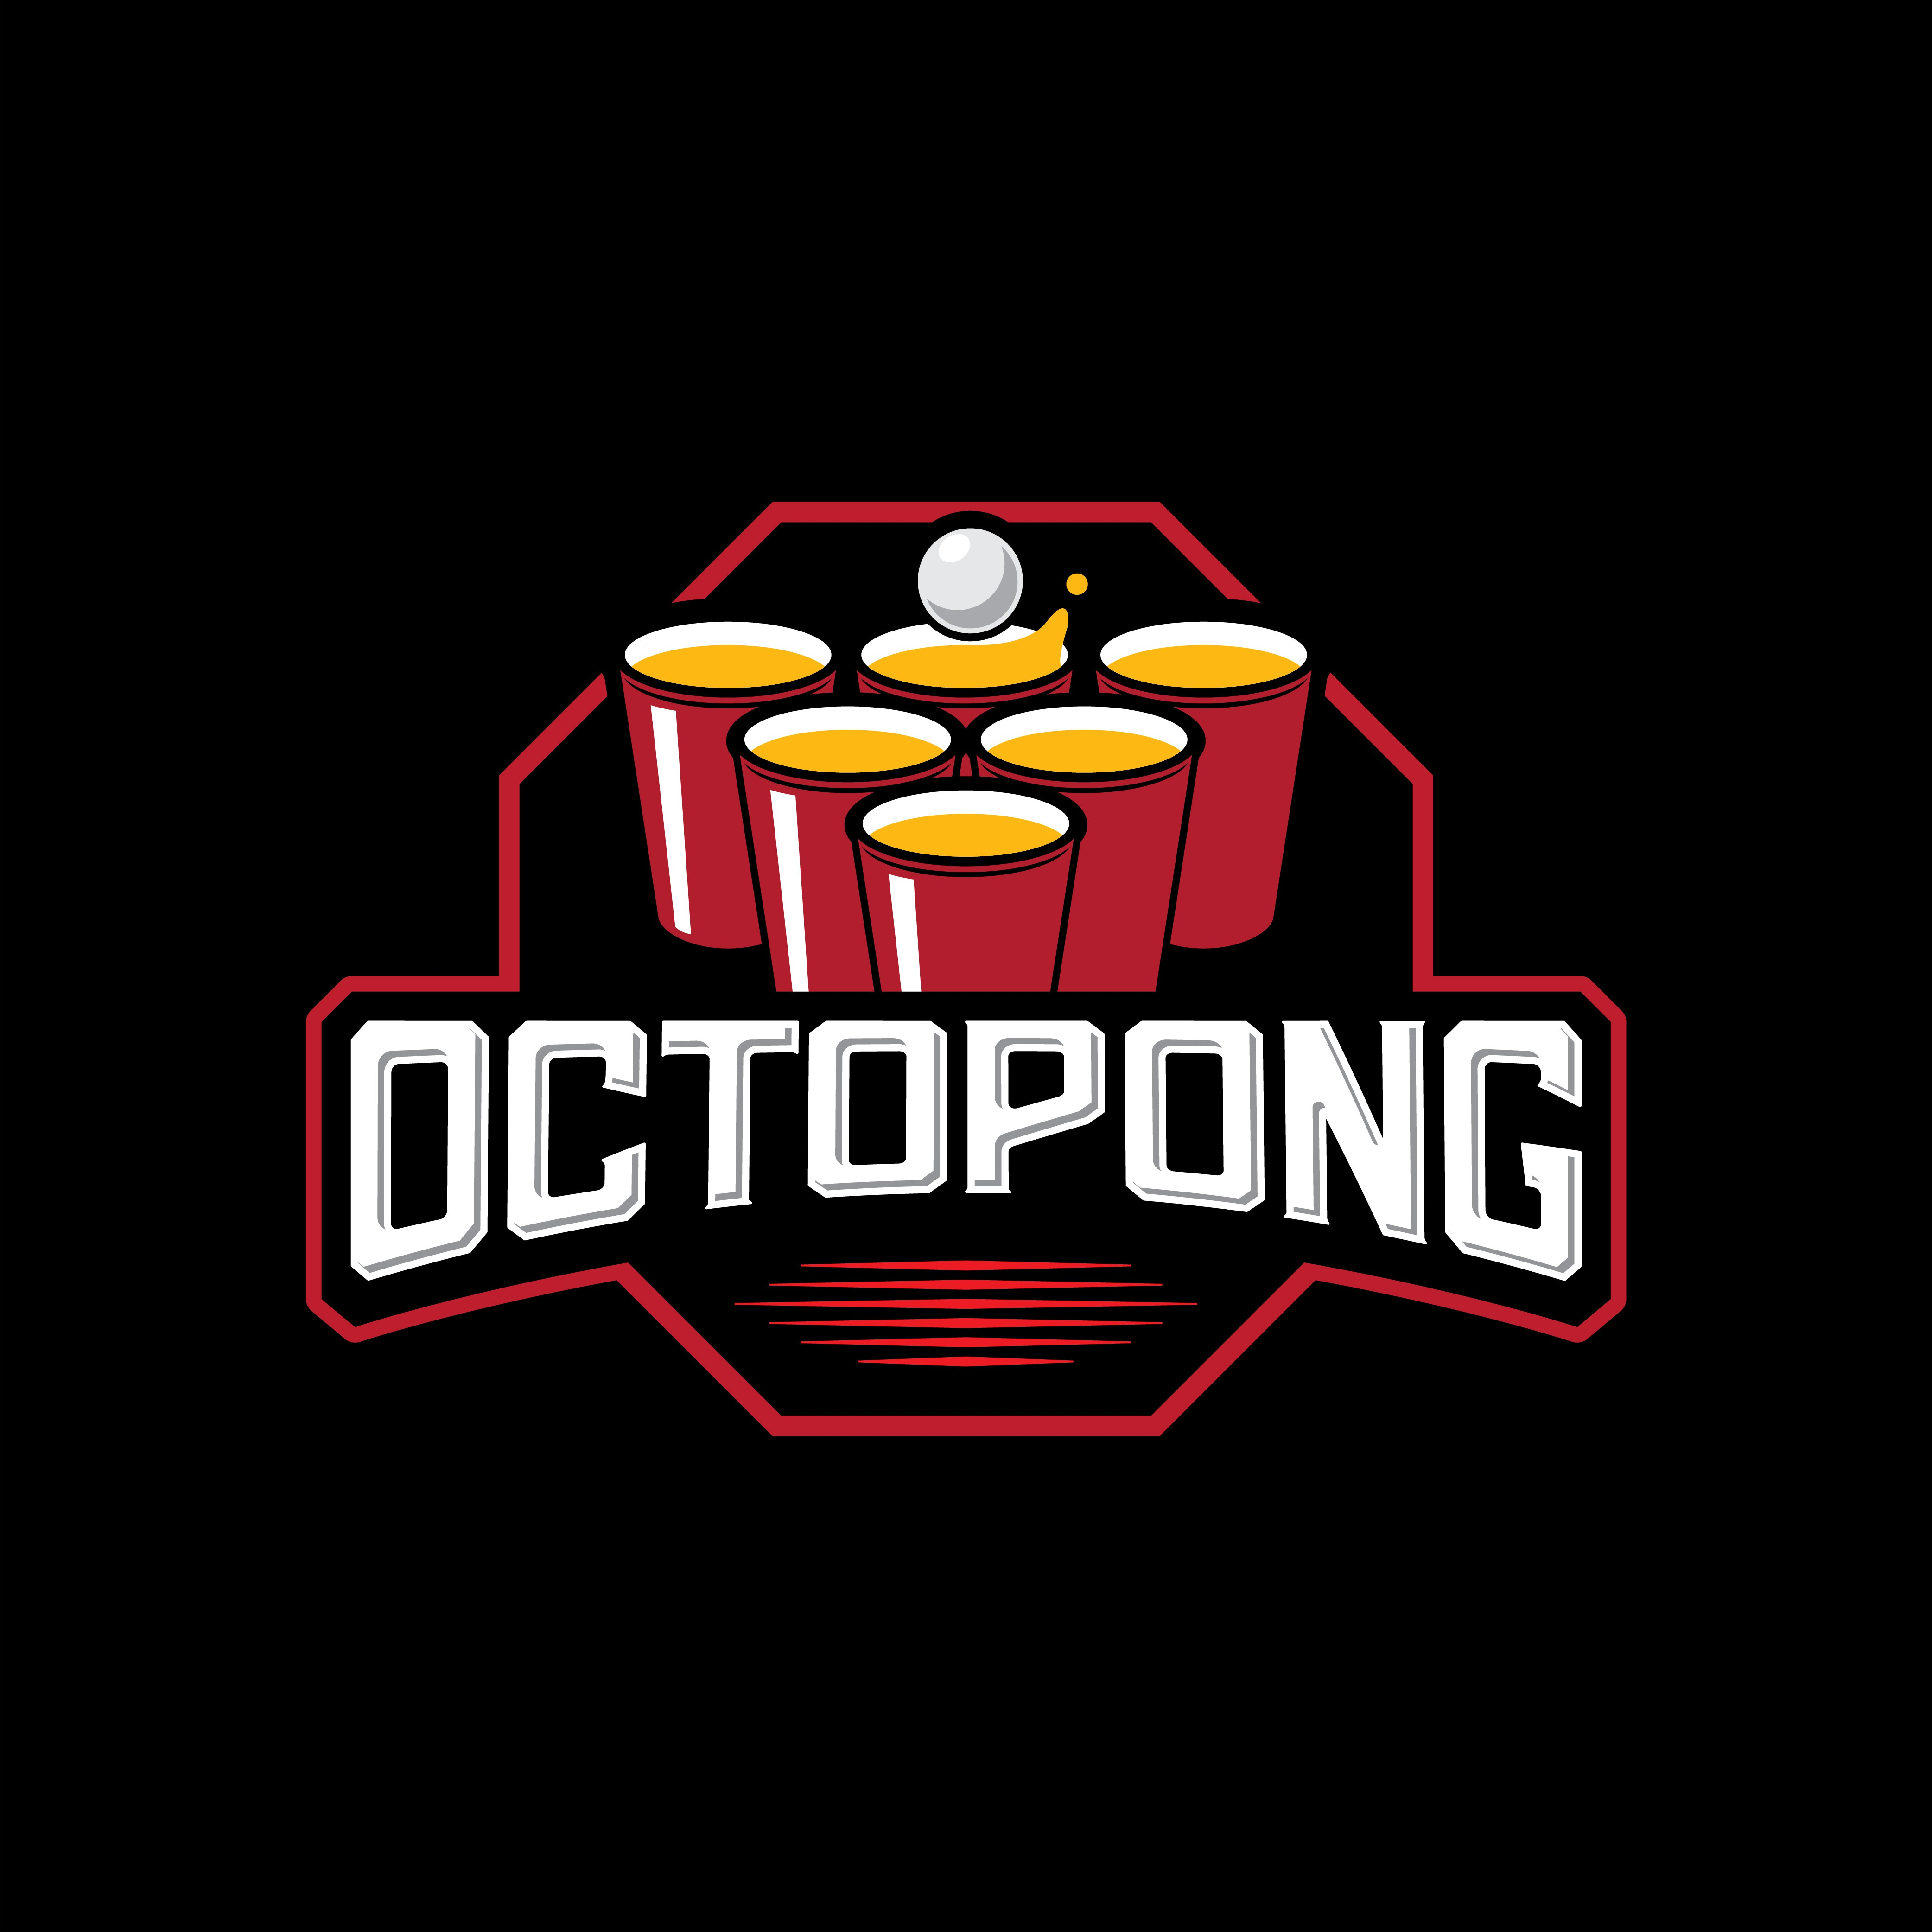 """Octopong """"Beer Pong on Steroids"""" needs an awesome logo"""